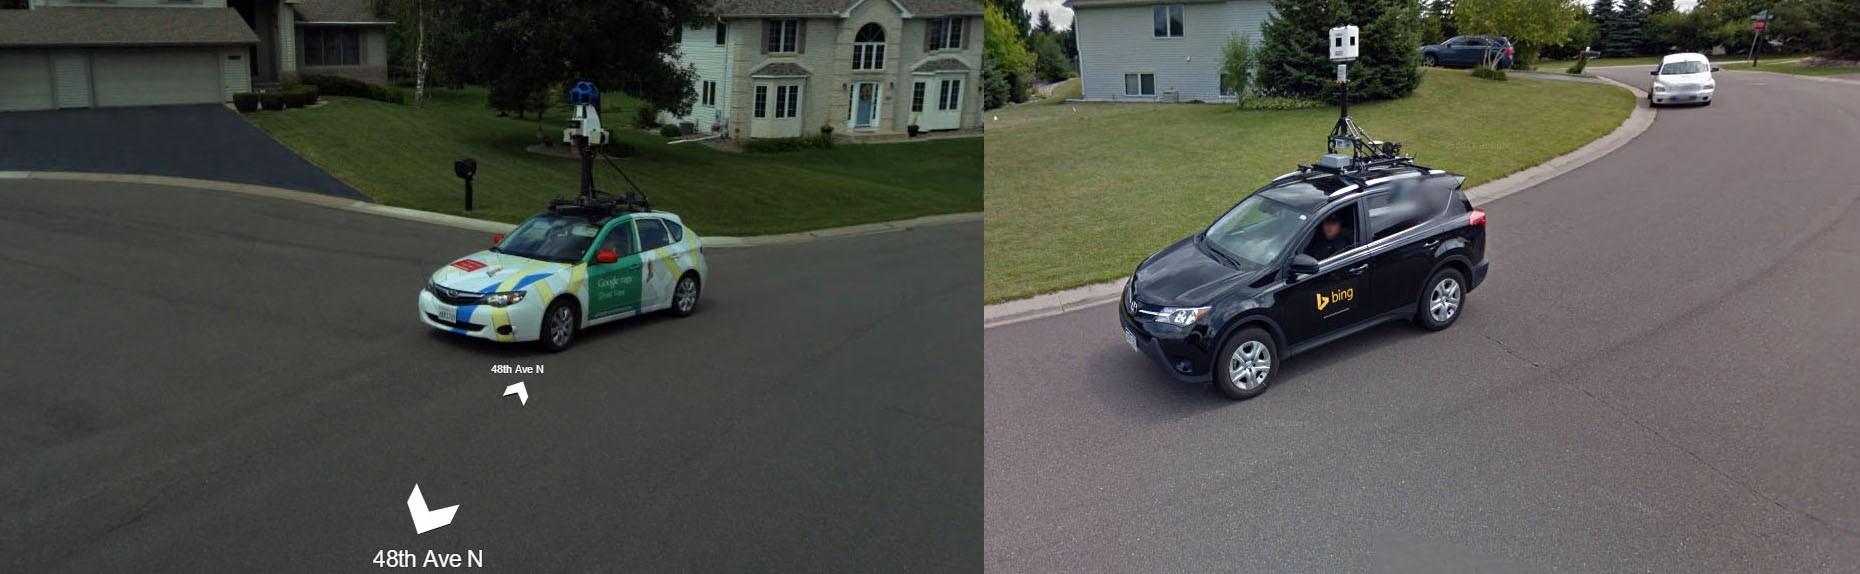 Google And Bing Cars Have Unlikely Run In With Each Other